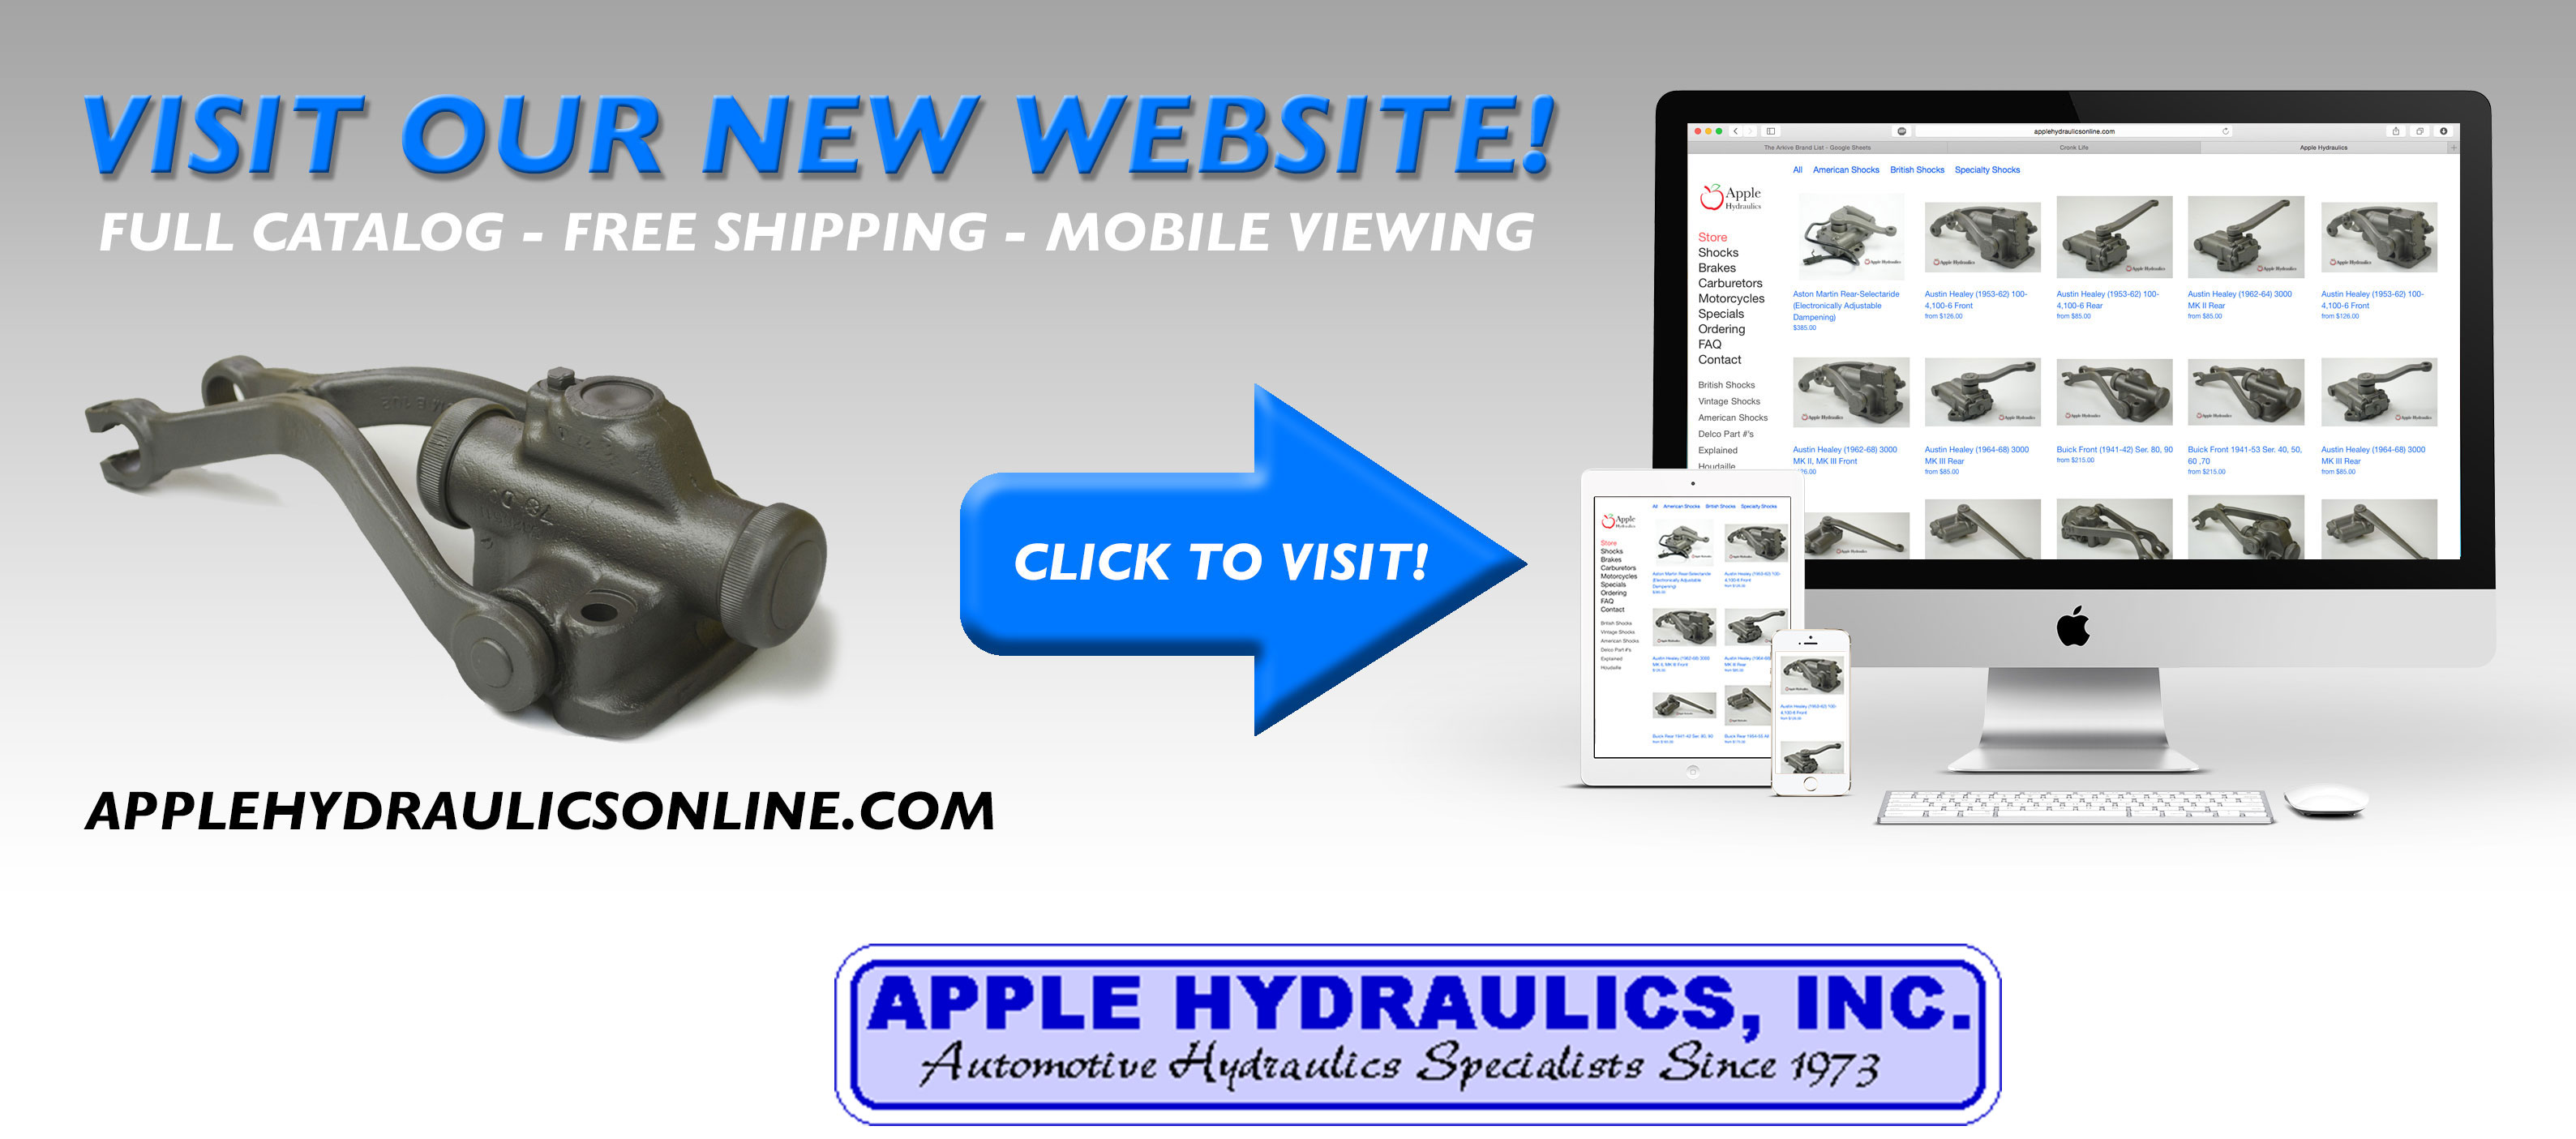 Apple Hydraulics, Inc